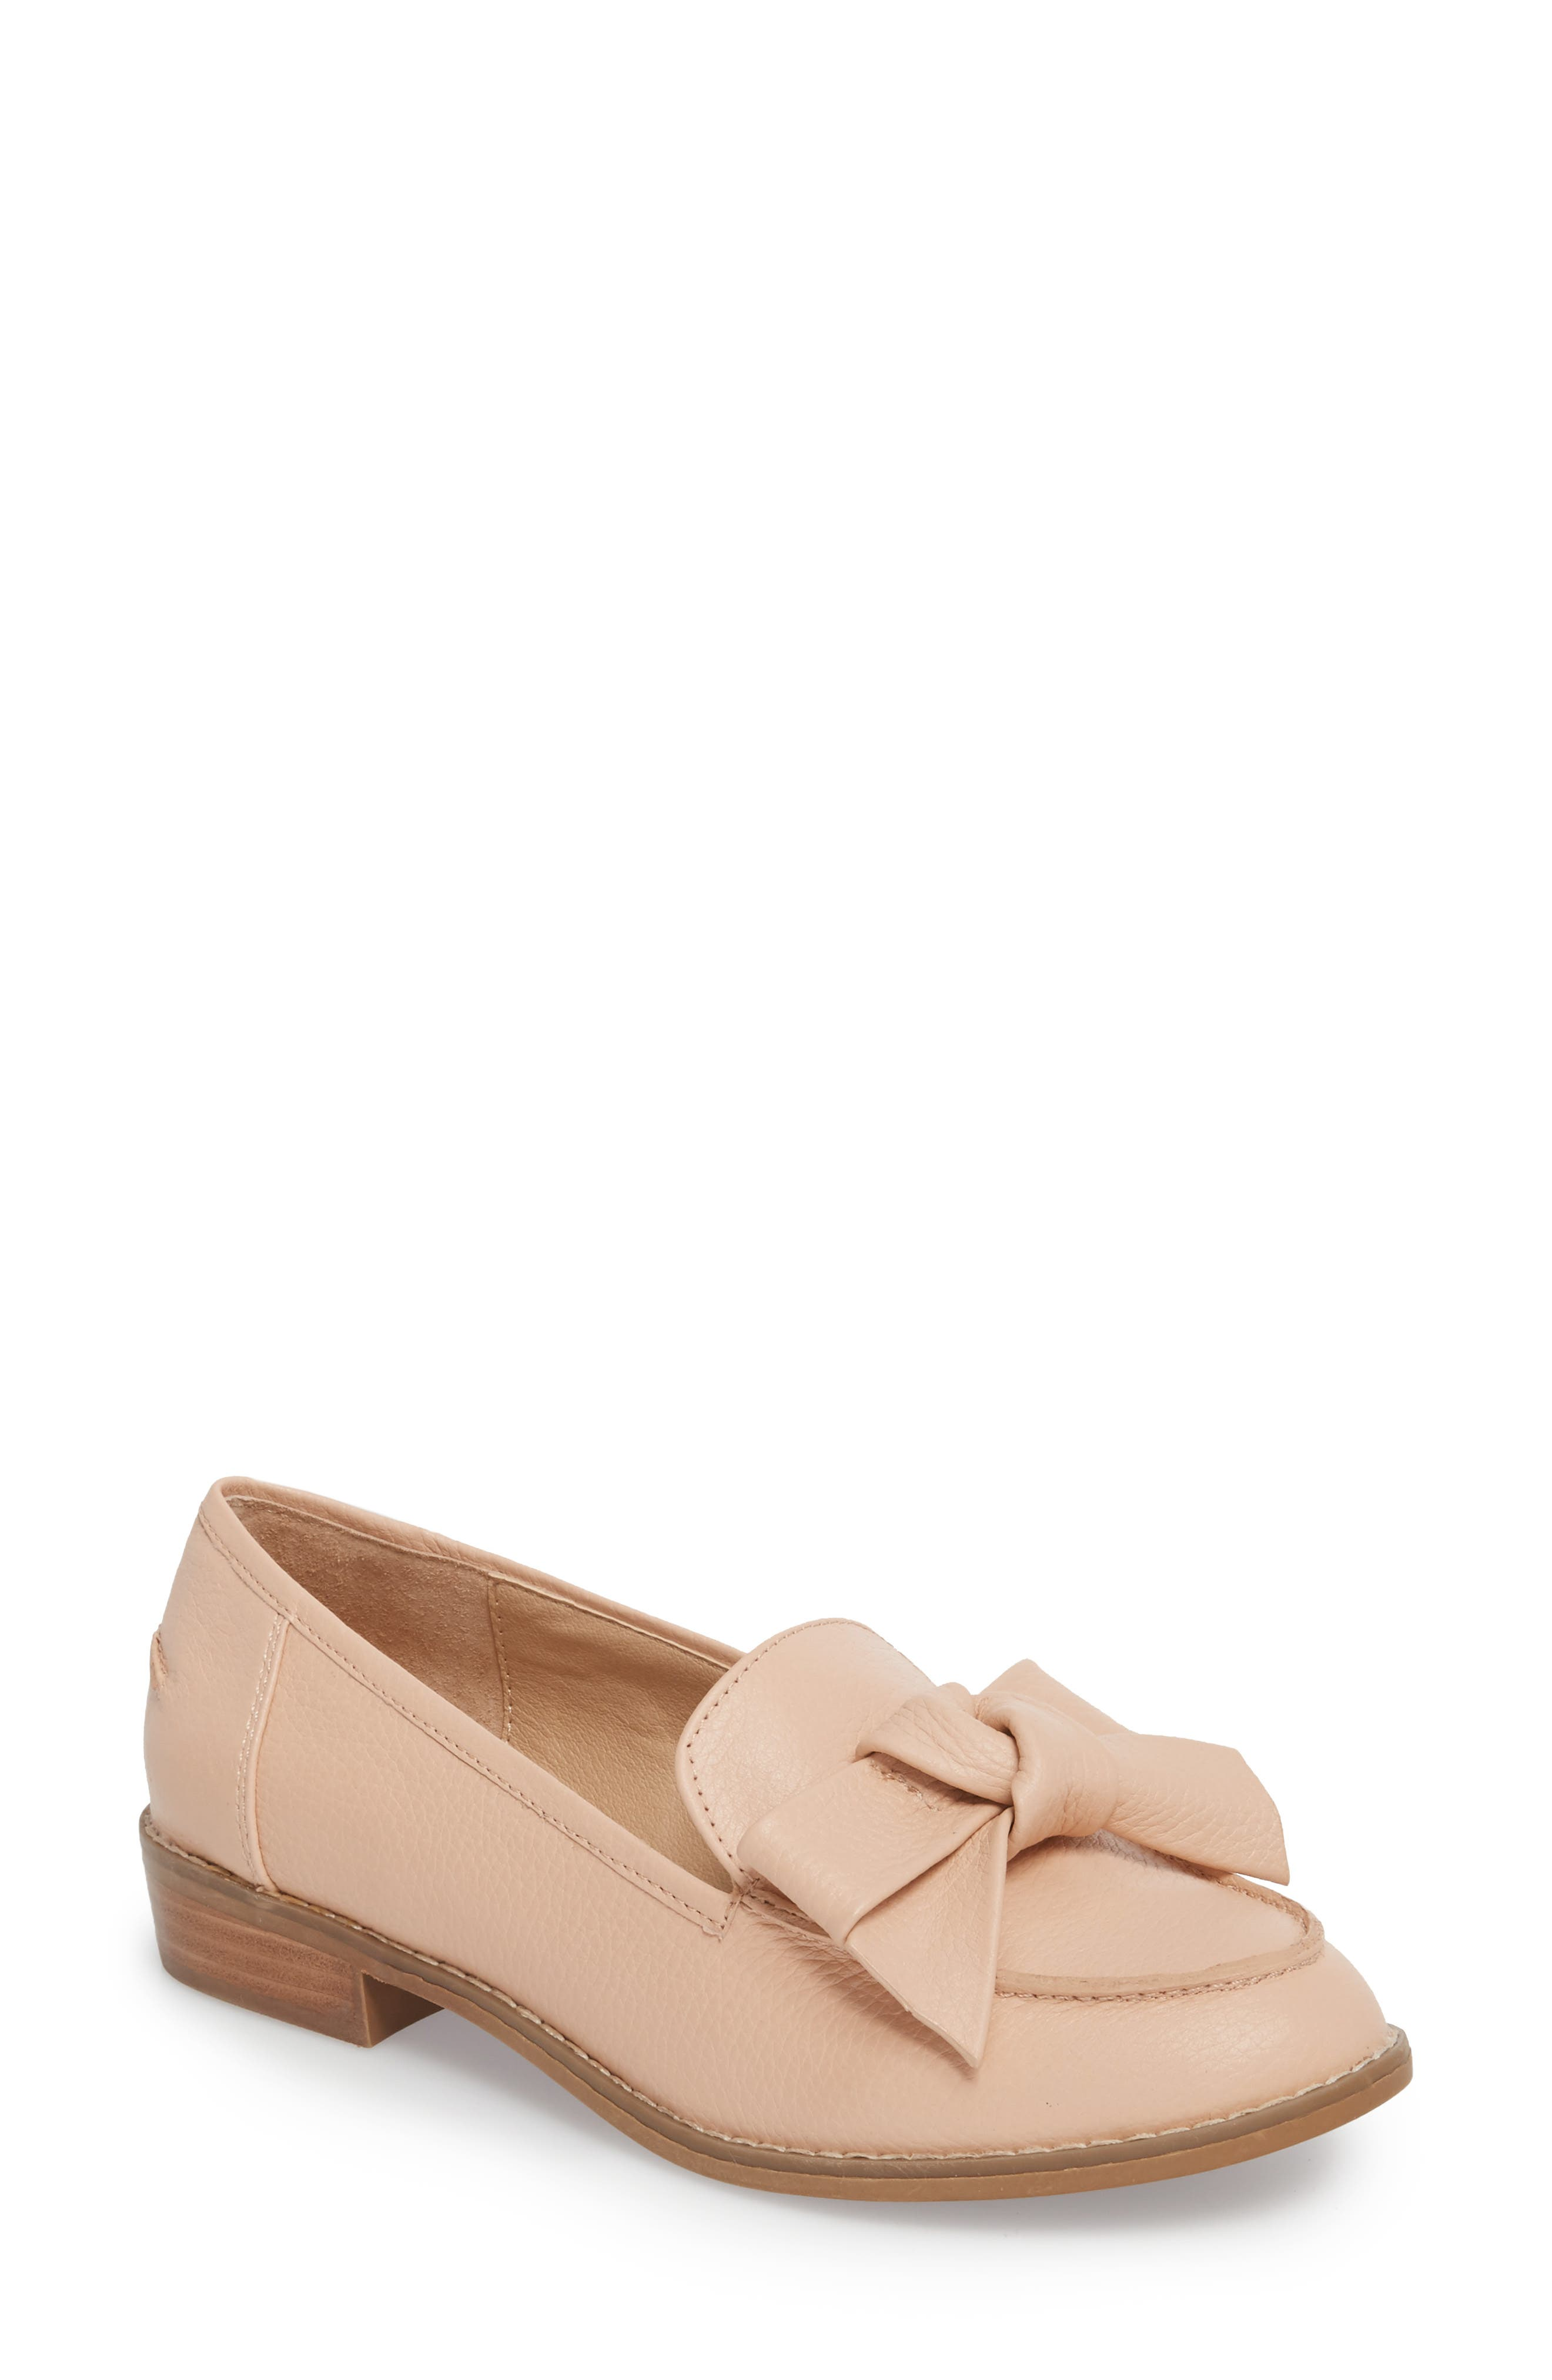 Beaux Loafer,                         Main,                         color, Blush